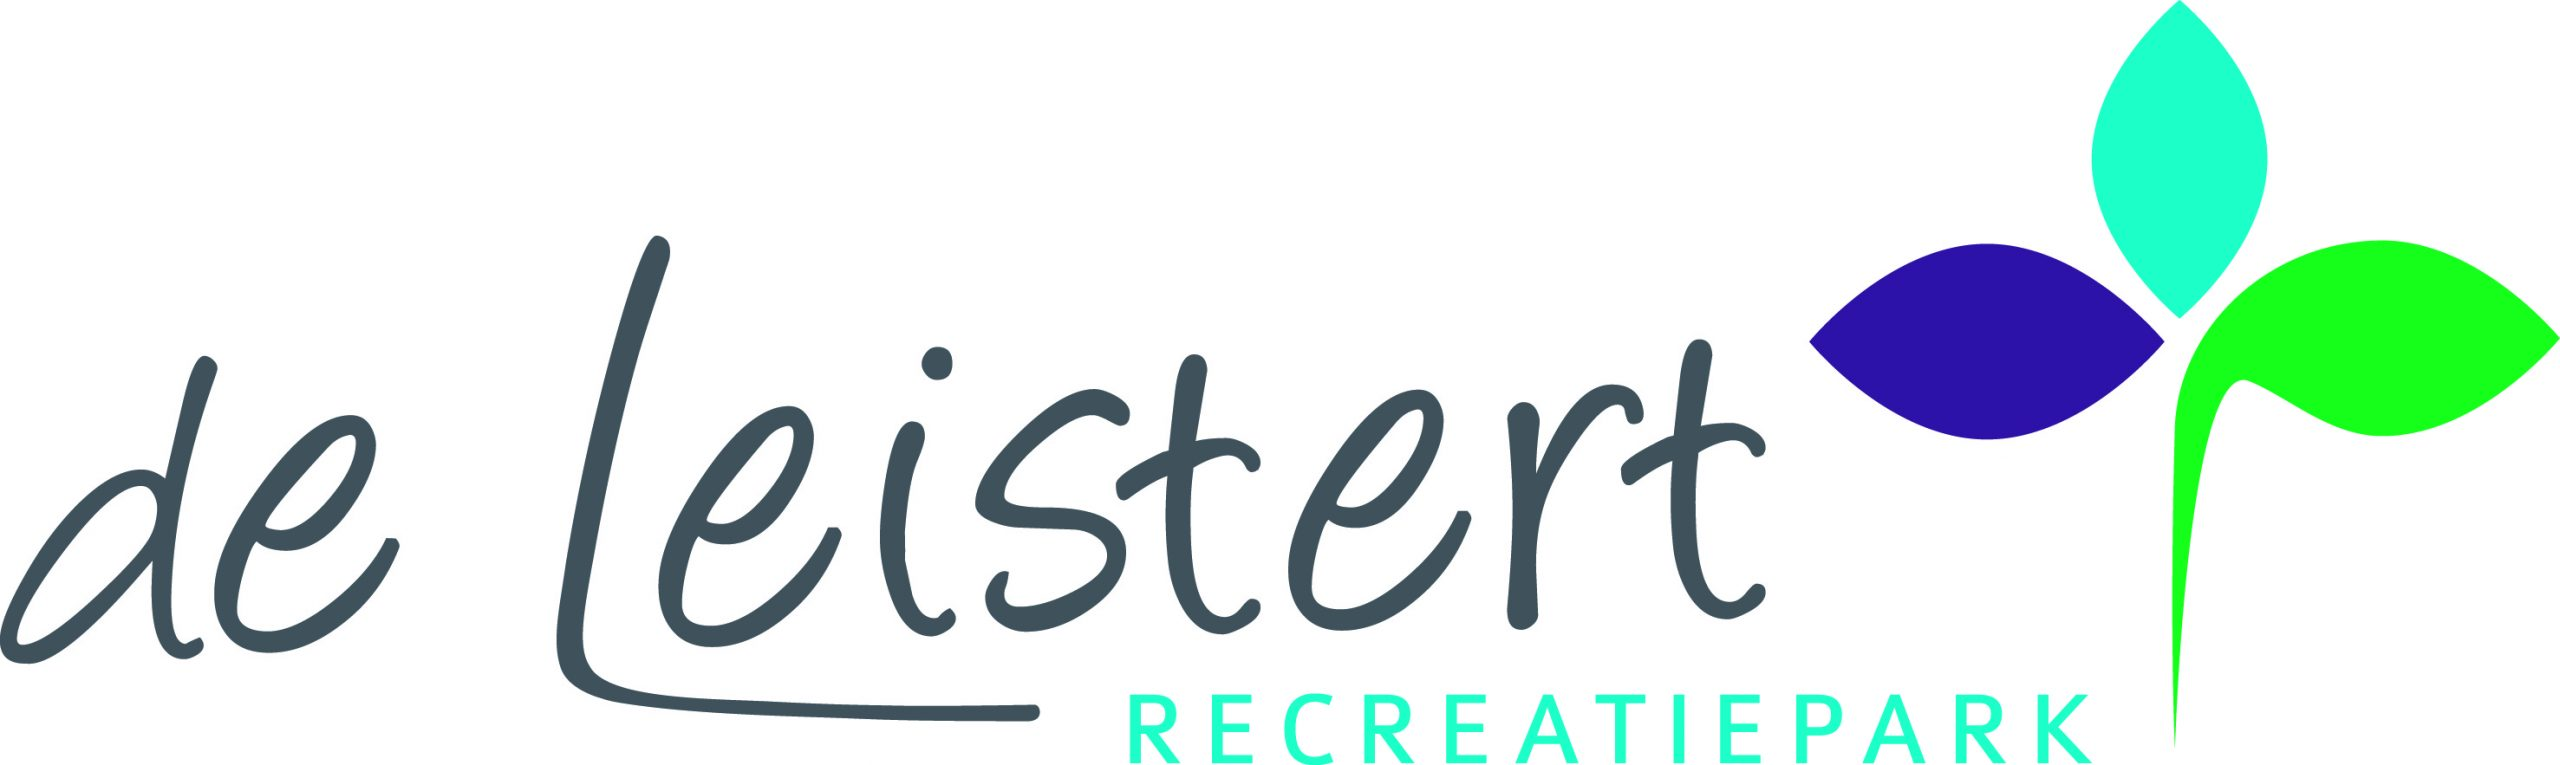 Logo de Leistert recreatiepark PMS